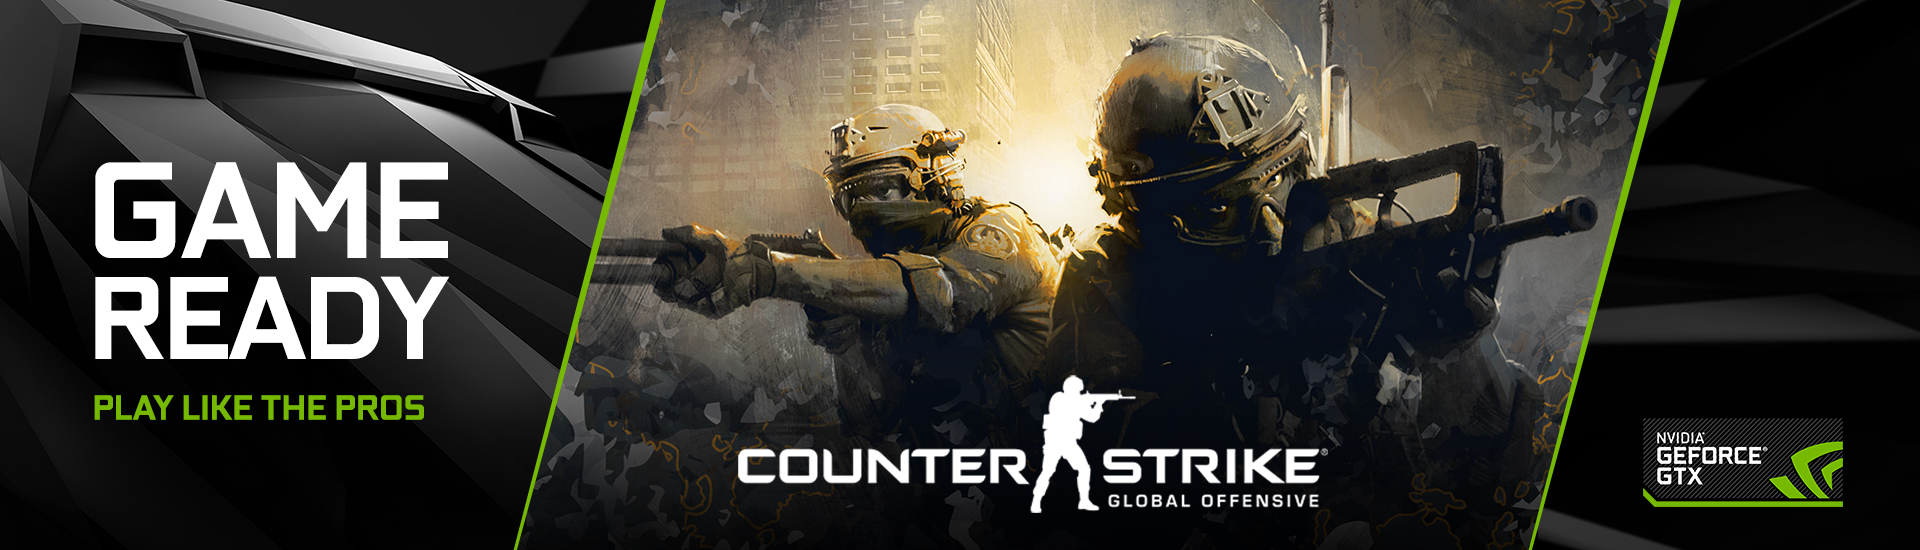 10series-game-ready-counter-strike